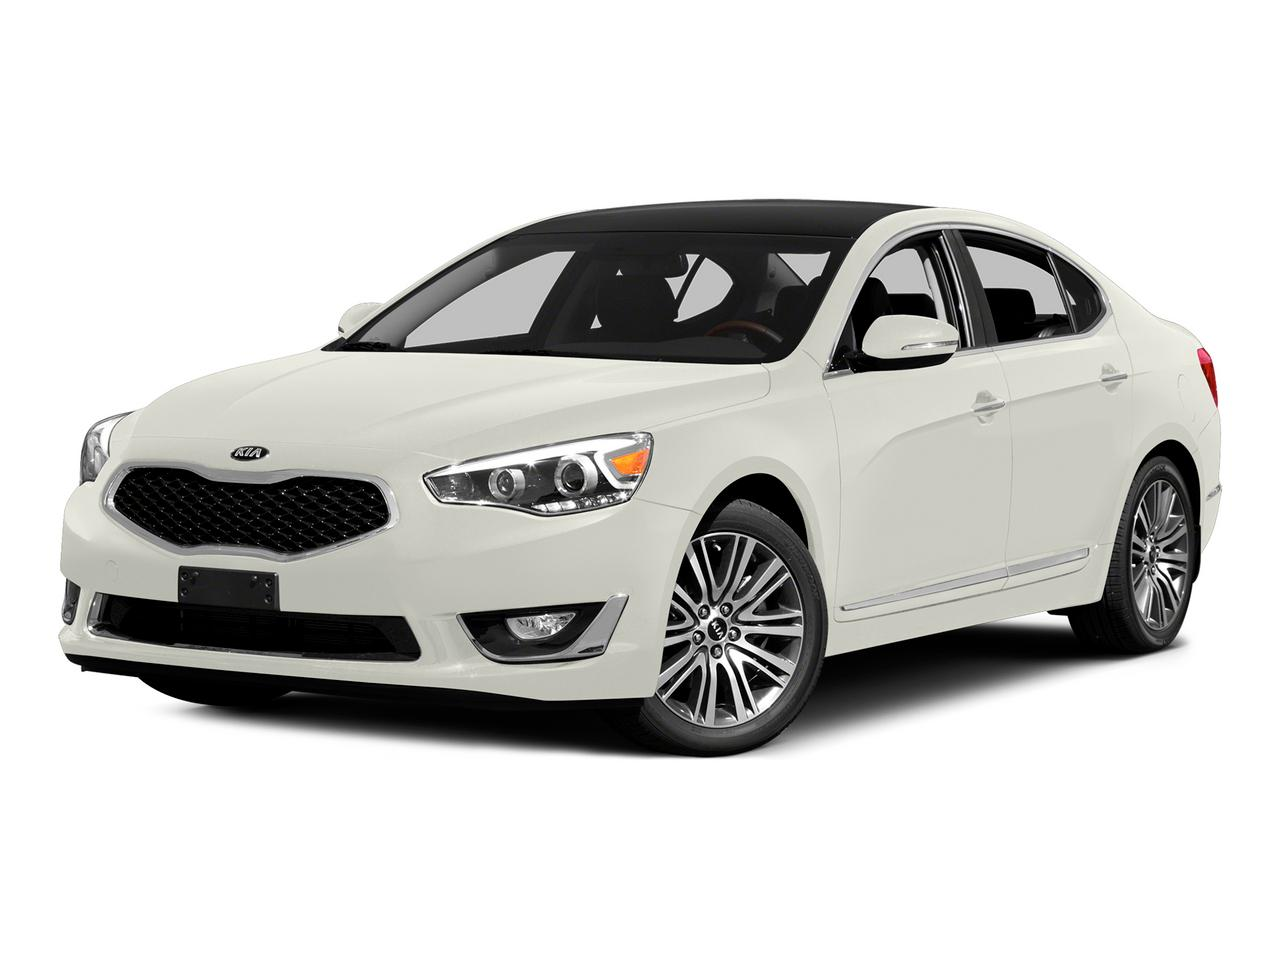 2015 Kia Cadenza Vehicle Photo in New Castle, DE 19720